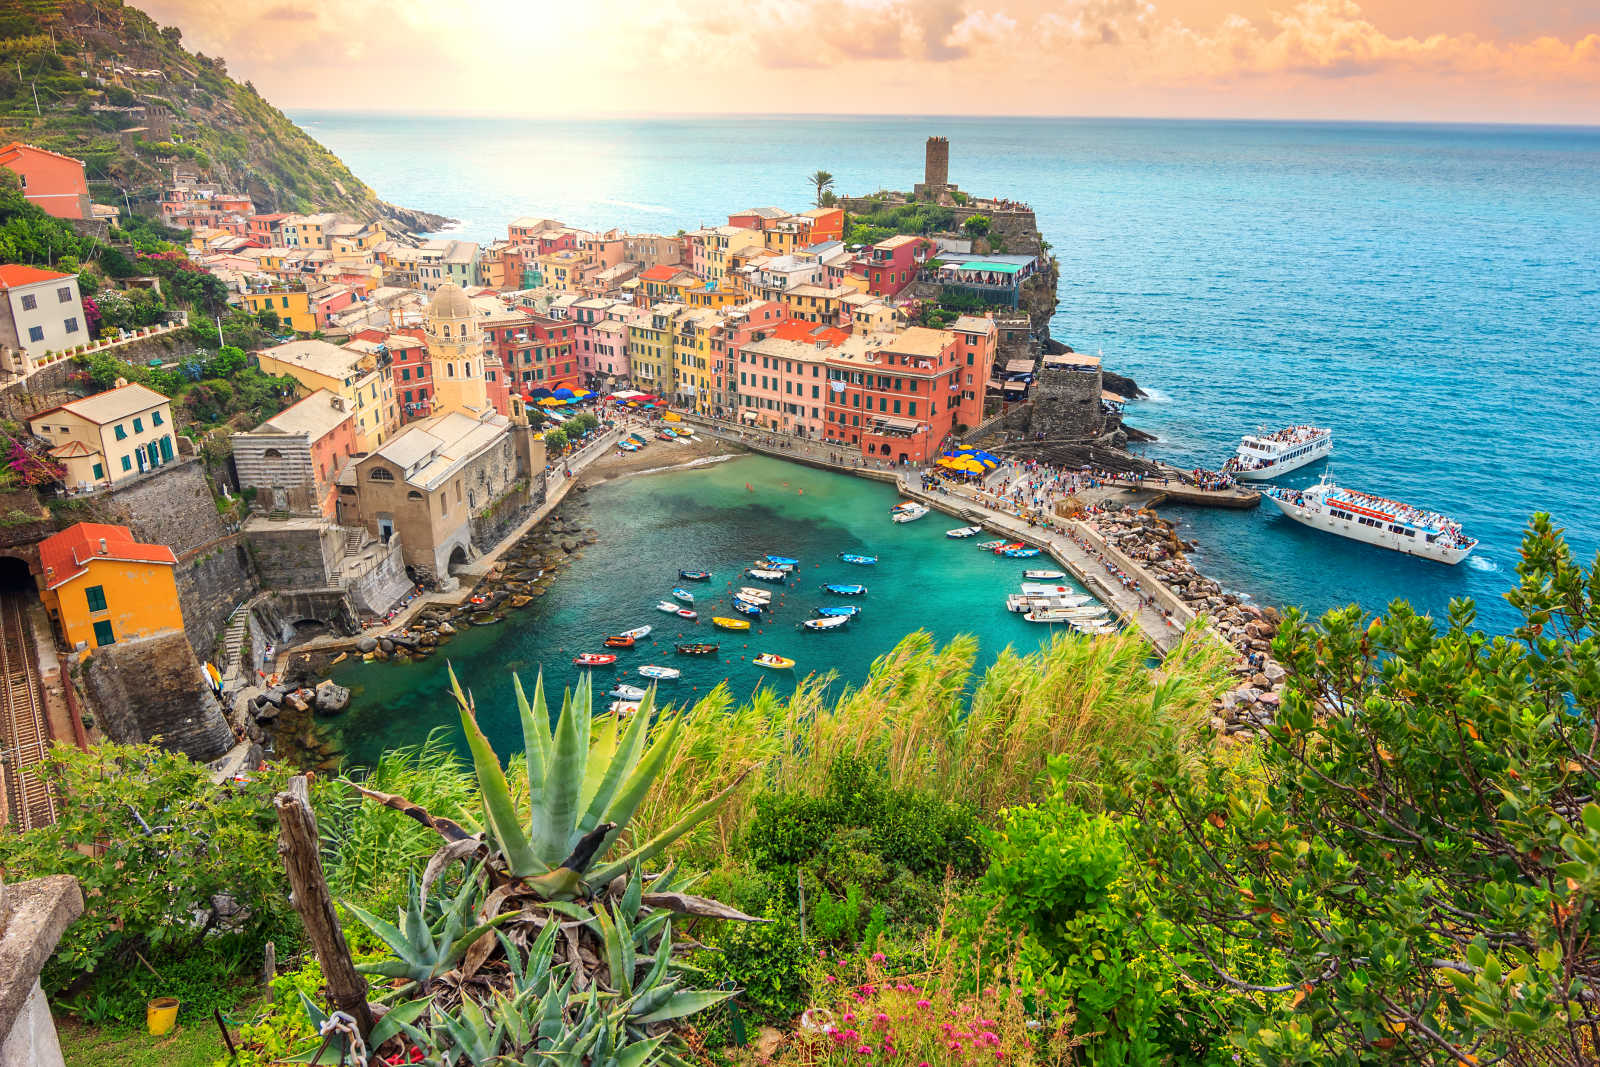 Cinque Terre trip - an unforgettable experience on the coast of Italy